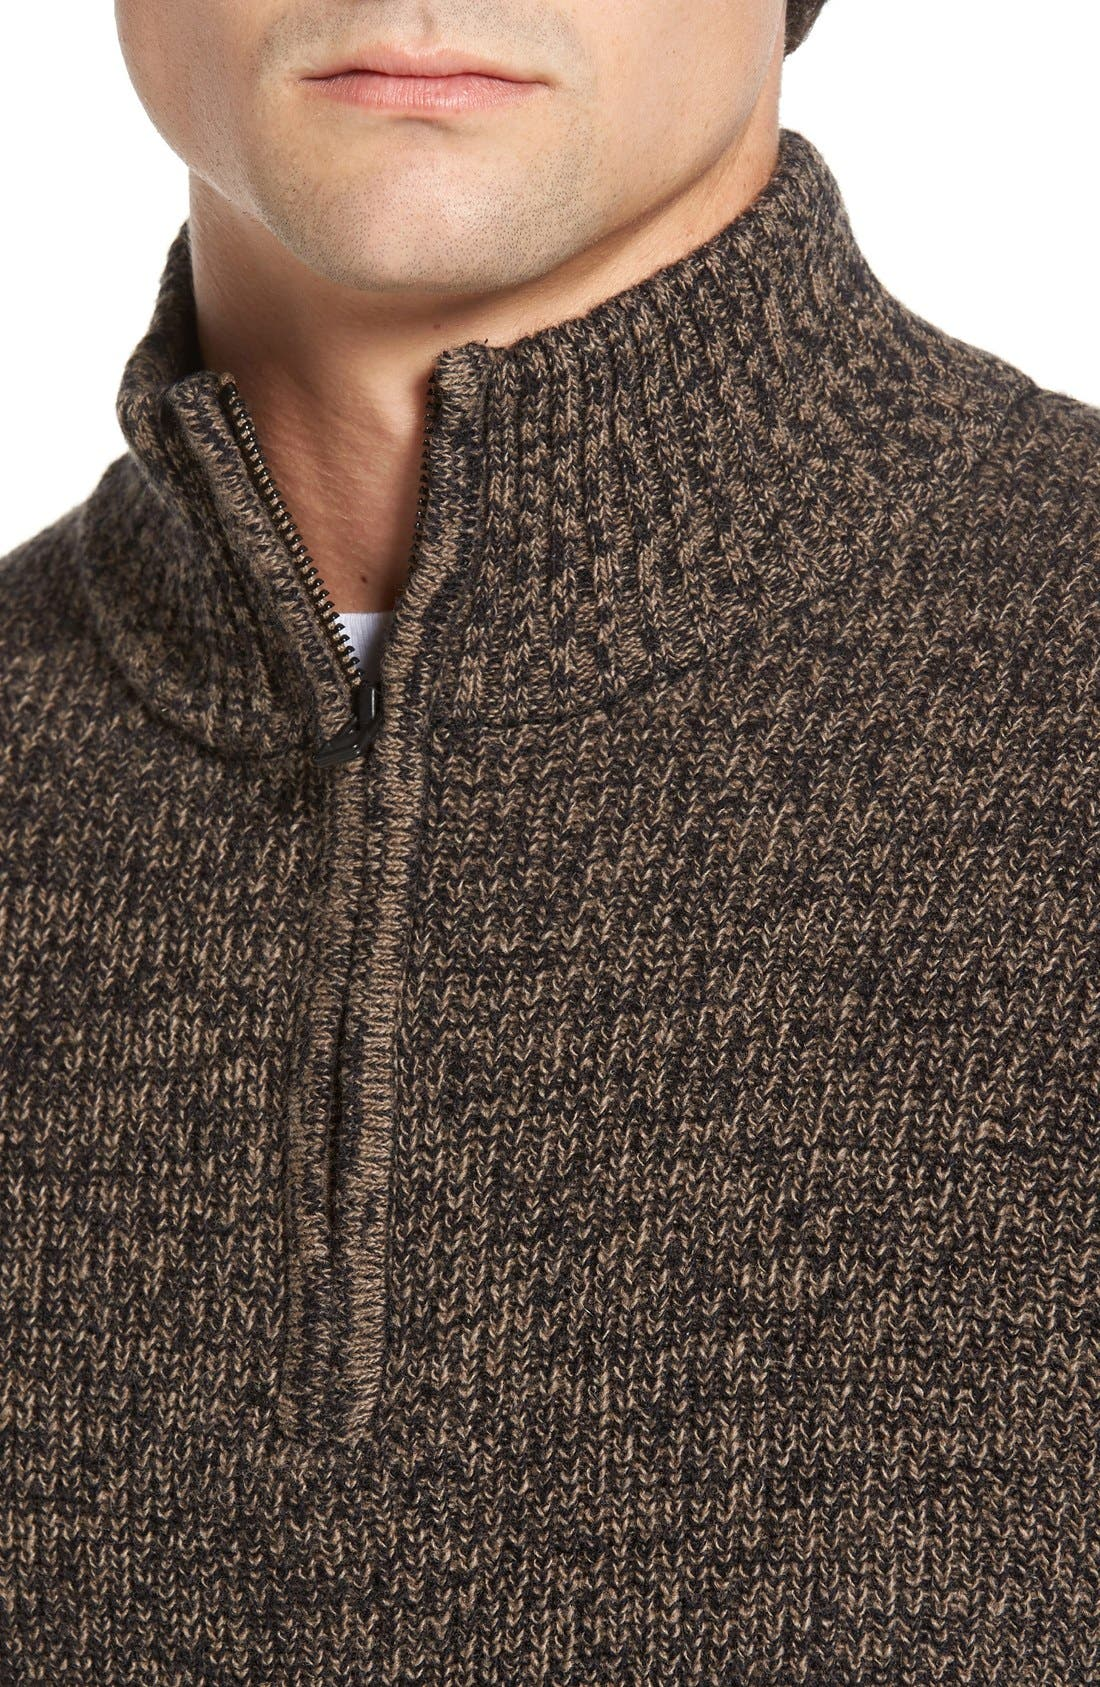 'Woodglen' Herringbone Knit Lambswool Quarter Zip Sweater,                             Alternate thumbnail 4, color,                             200